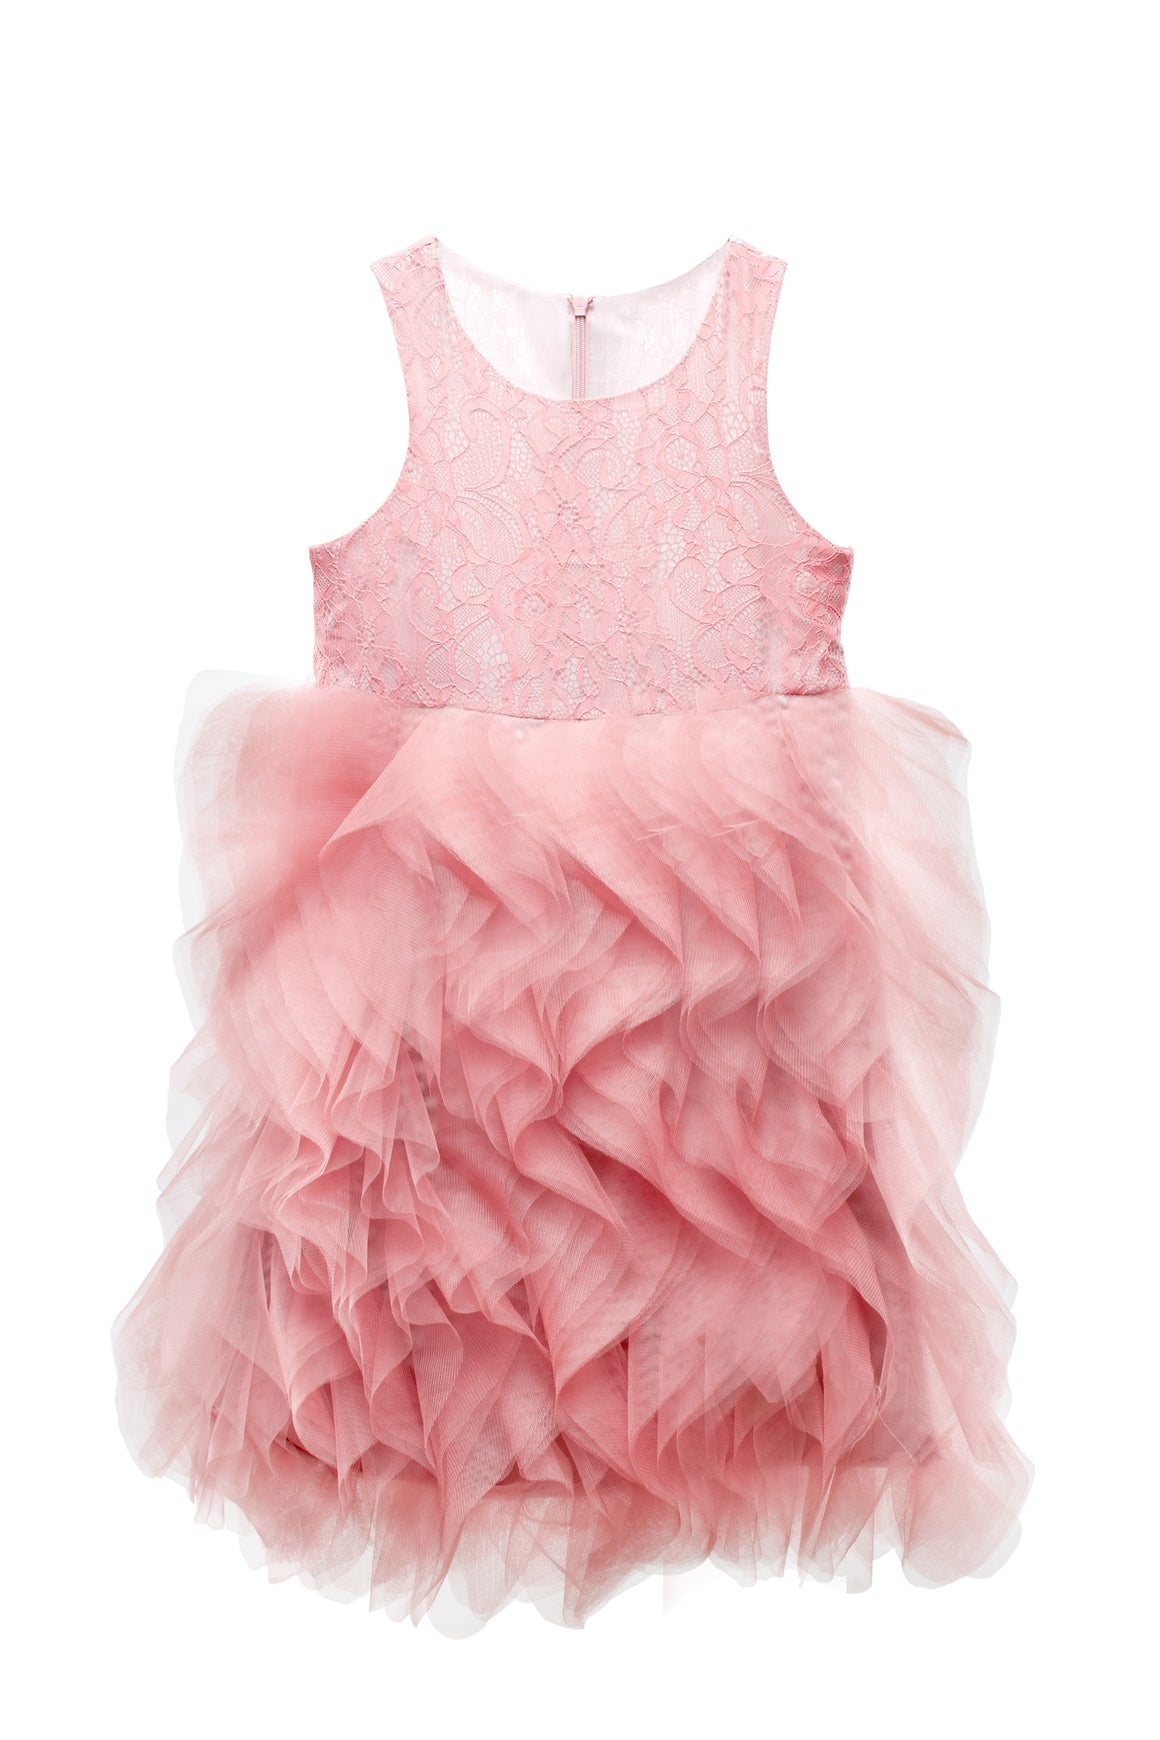 Mischka Aoki - Admiring Pink Avenue Couture Dress | Party Dresses | Bon Bon Tresor